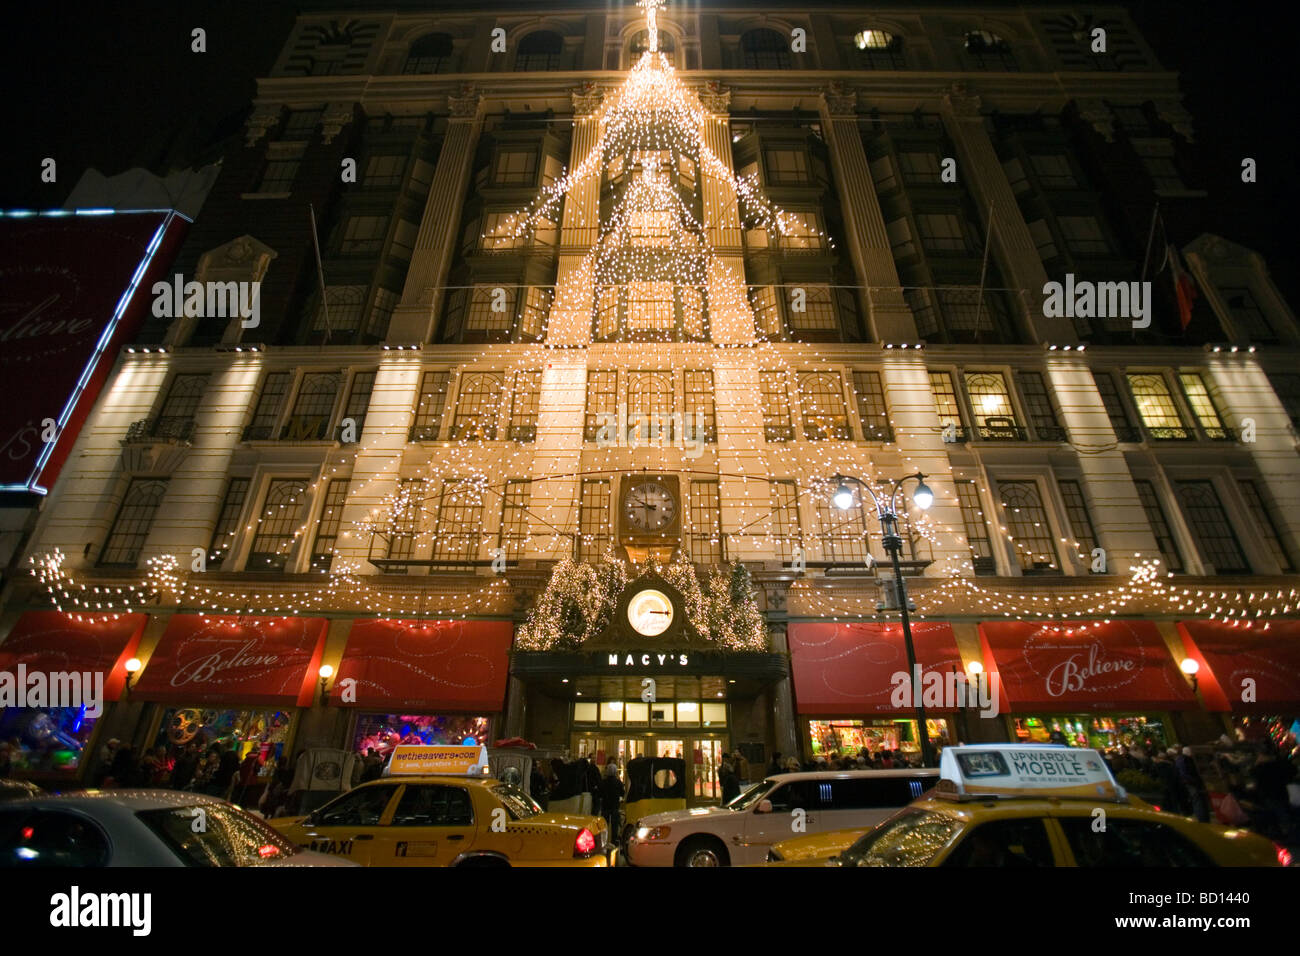 christmas decorations at macy s in herald square in new york city new york